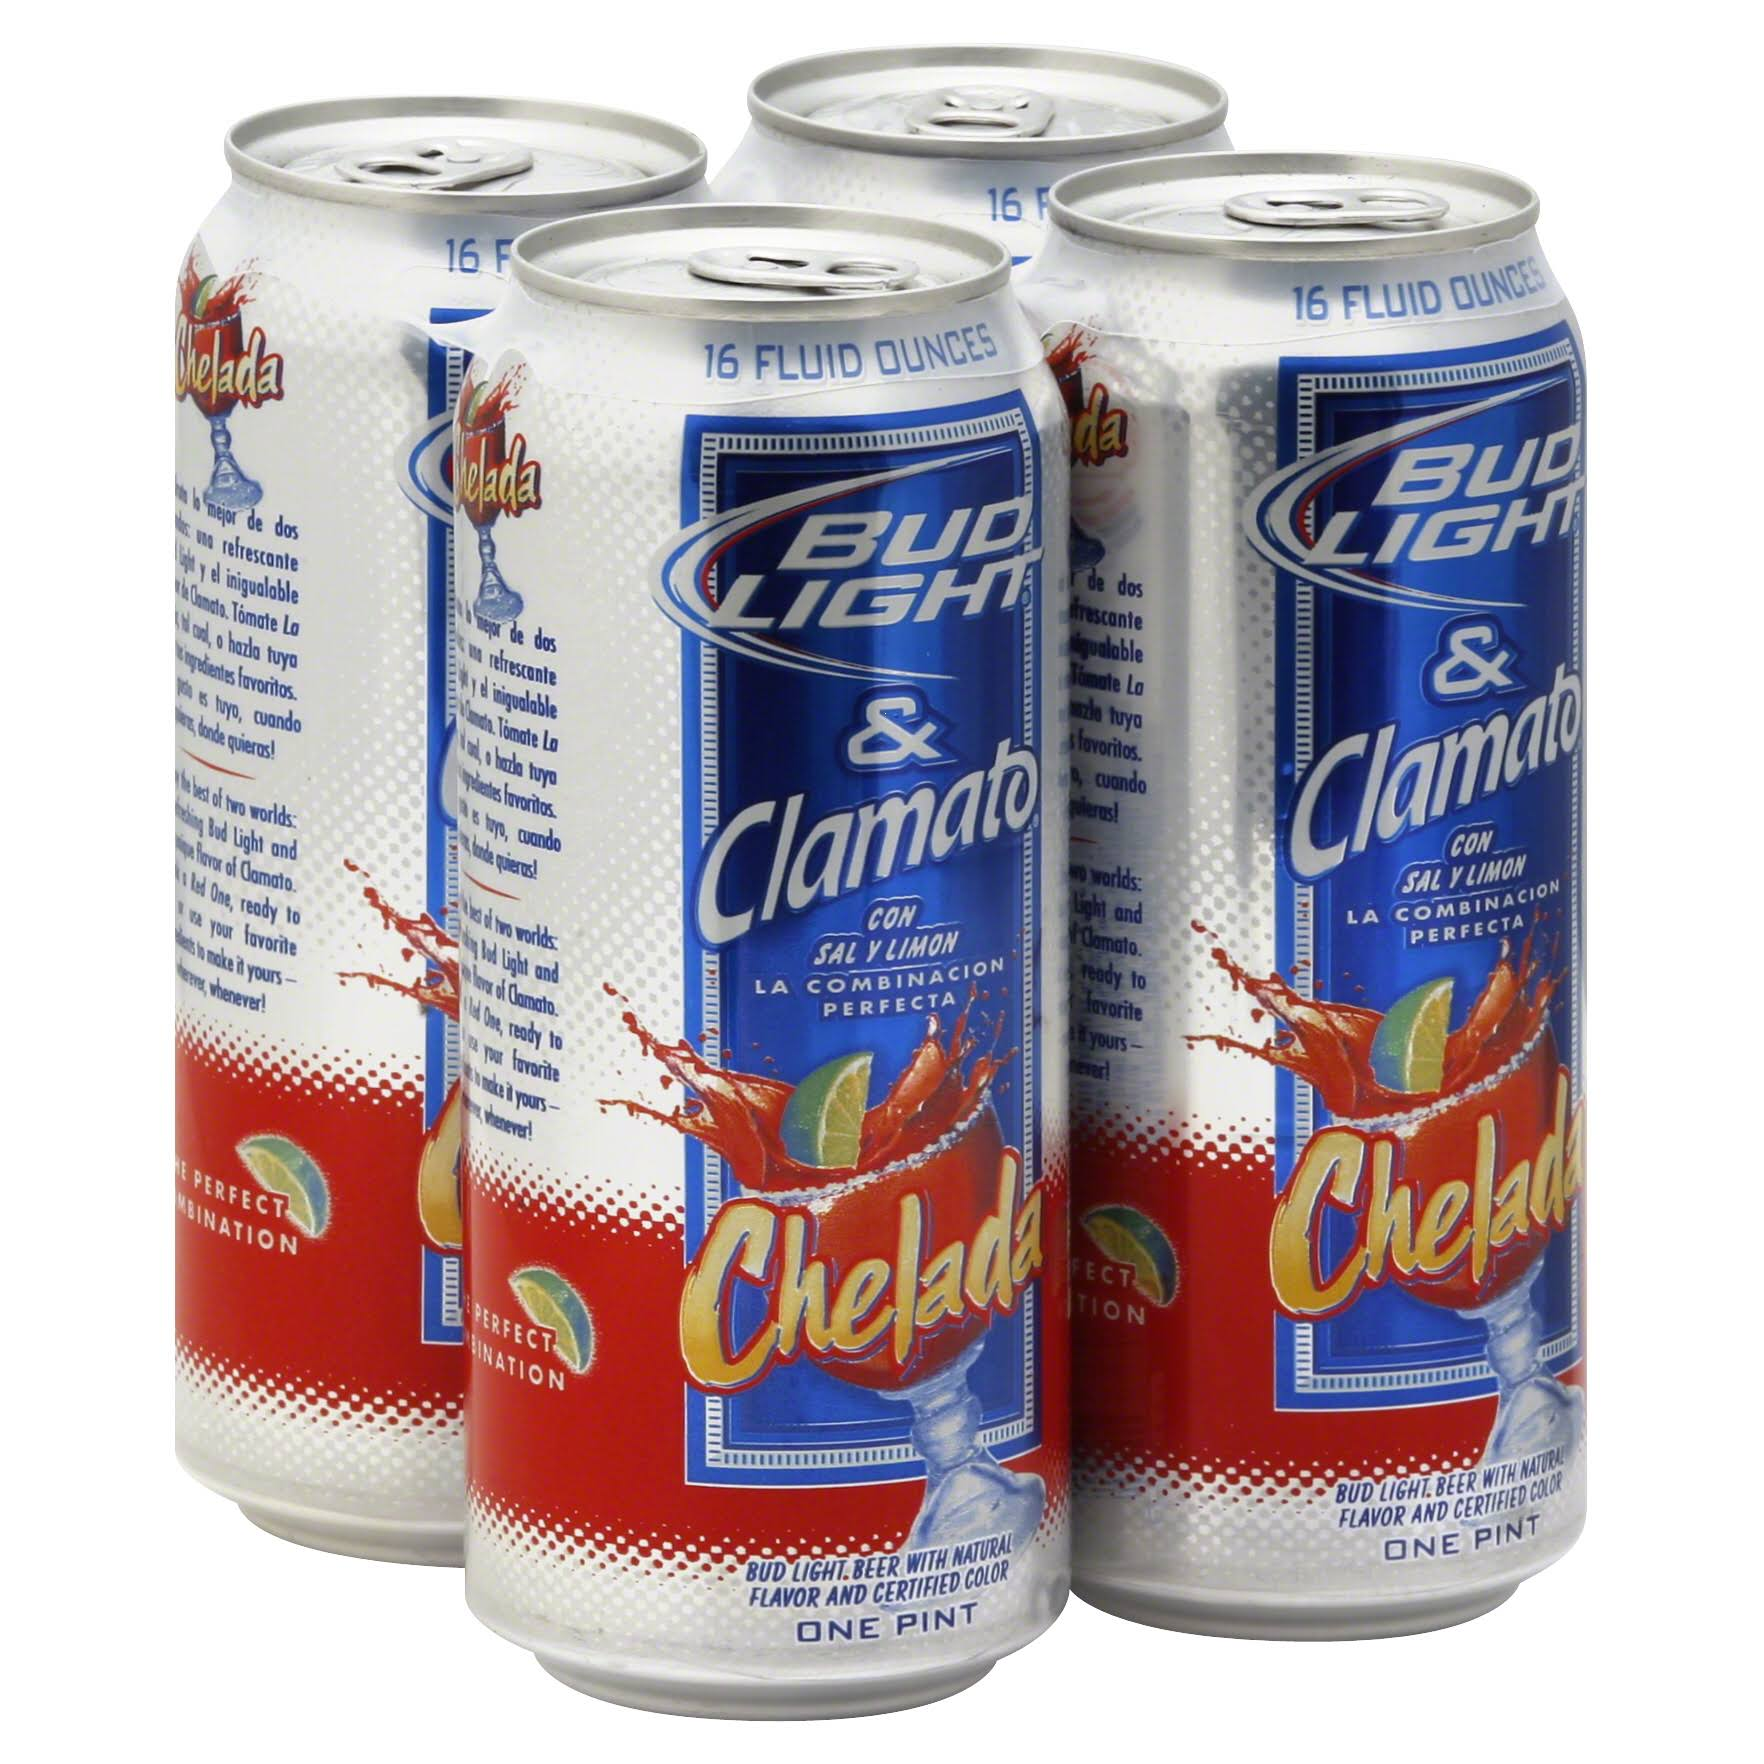 Bud Light Clamato Chelada Beer - 16oz